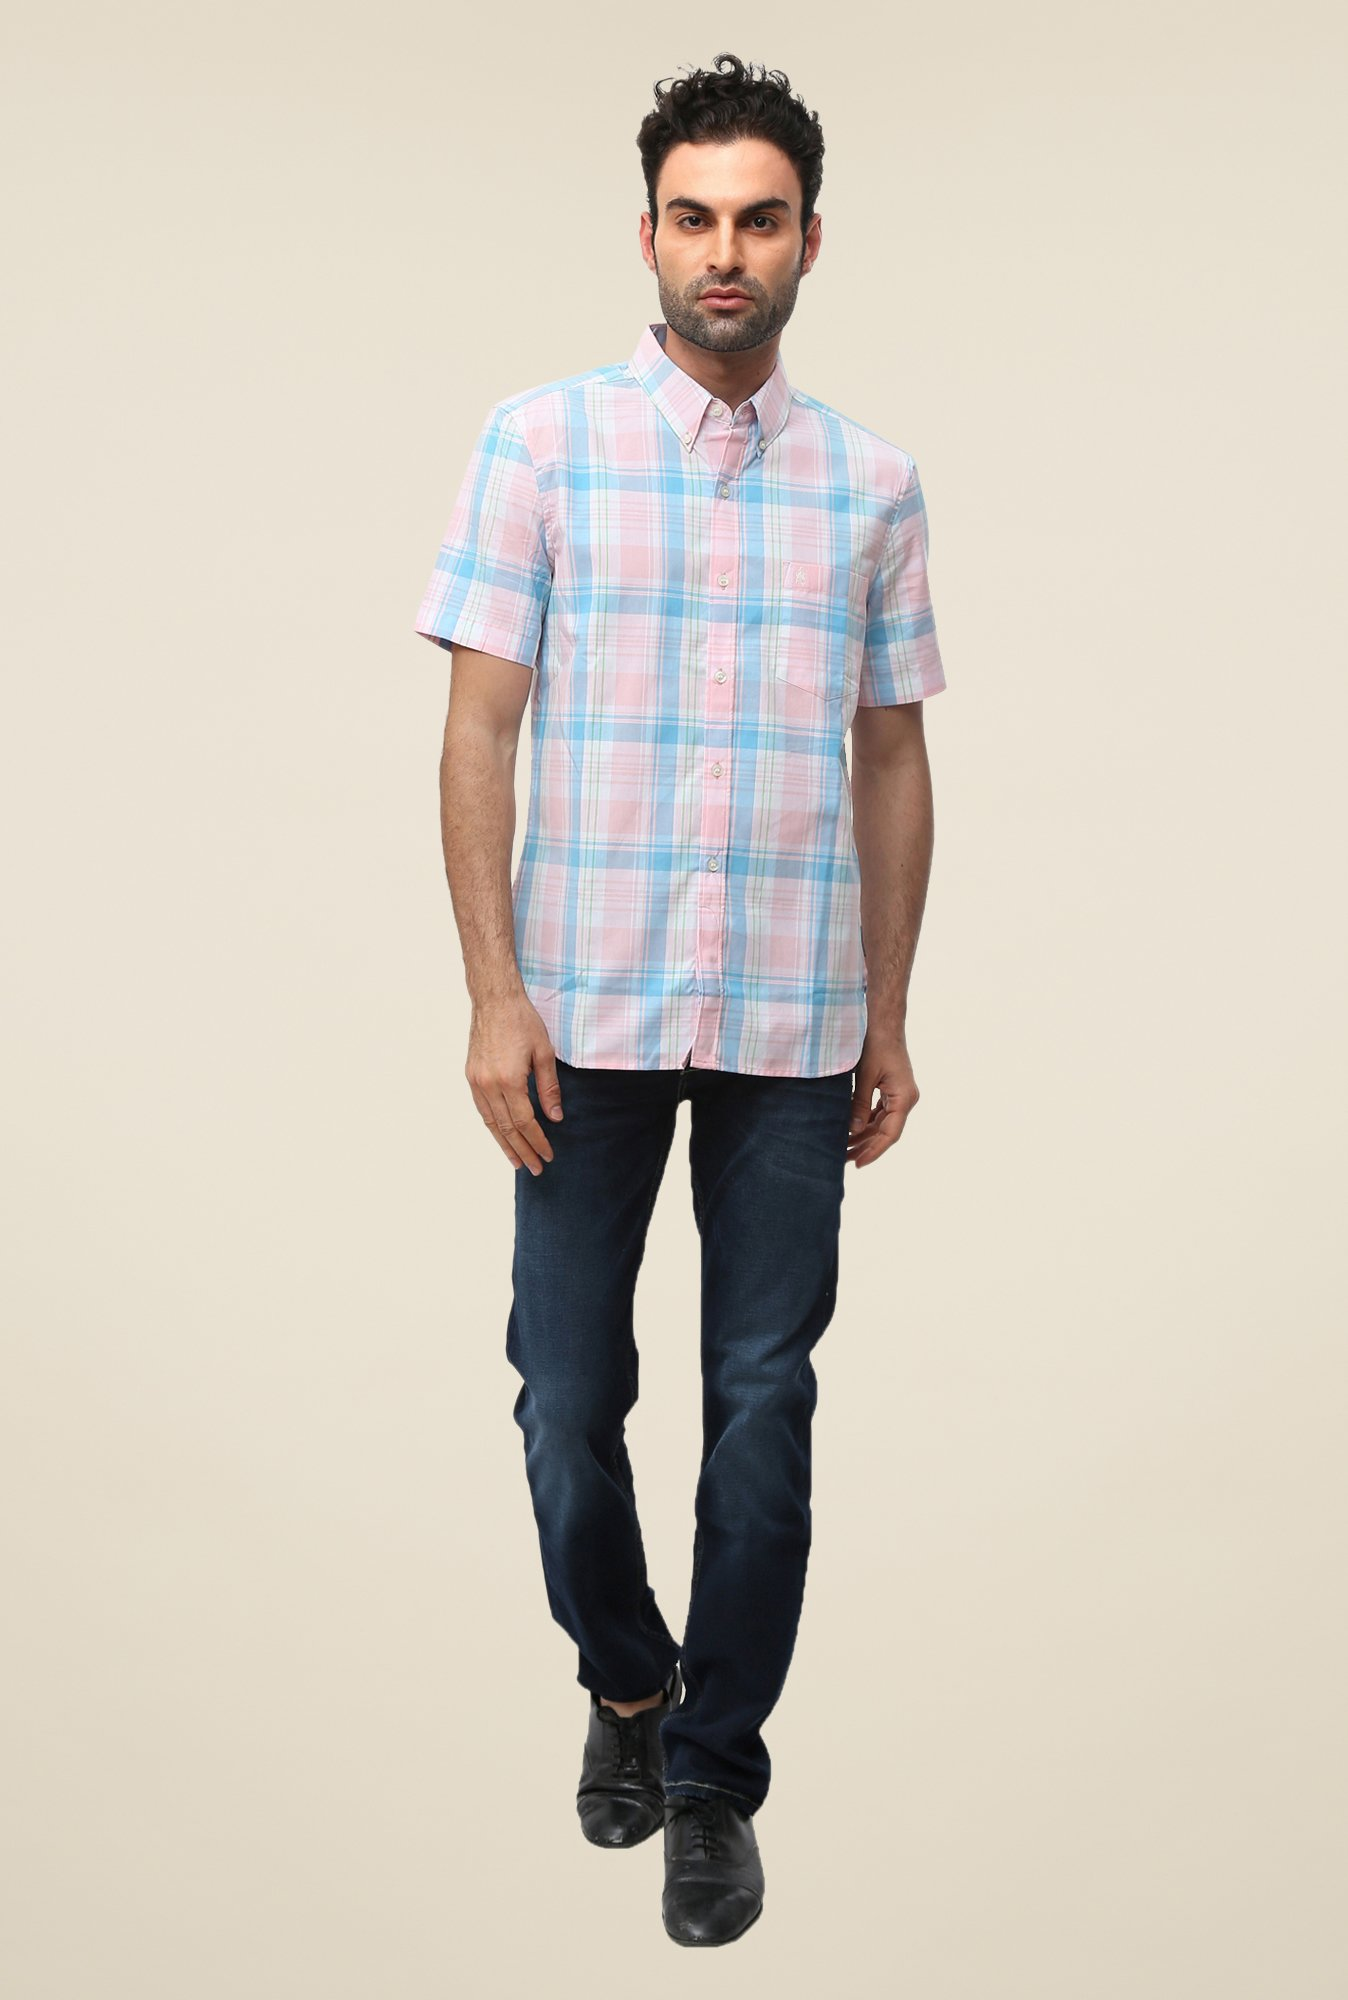 FCUK Pink Half Sleeve Checks Shirt